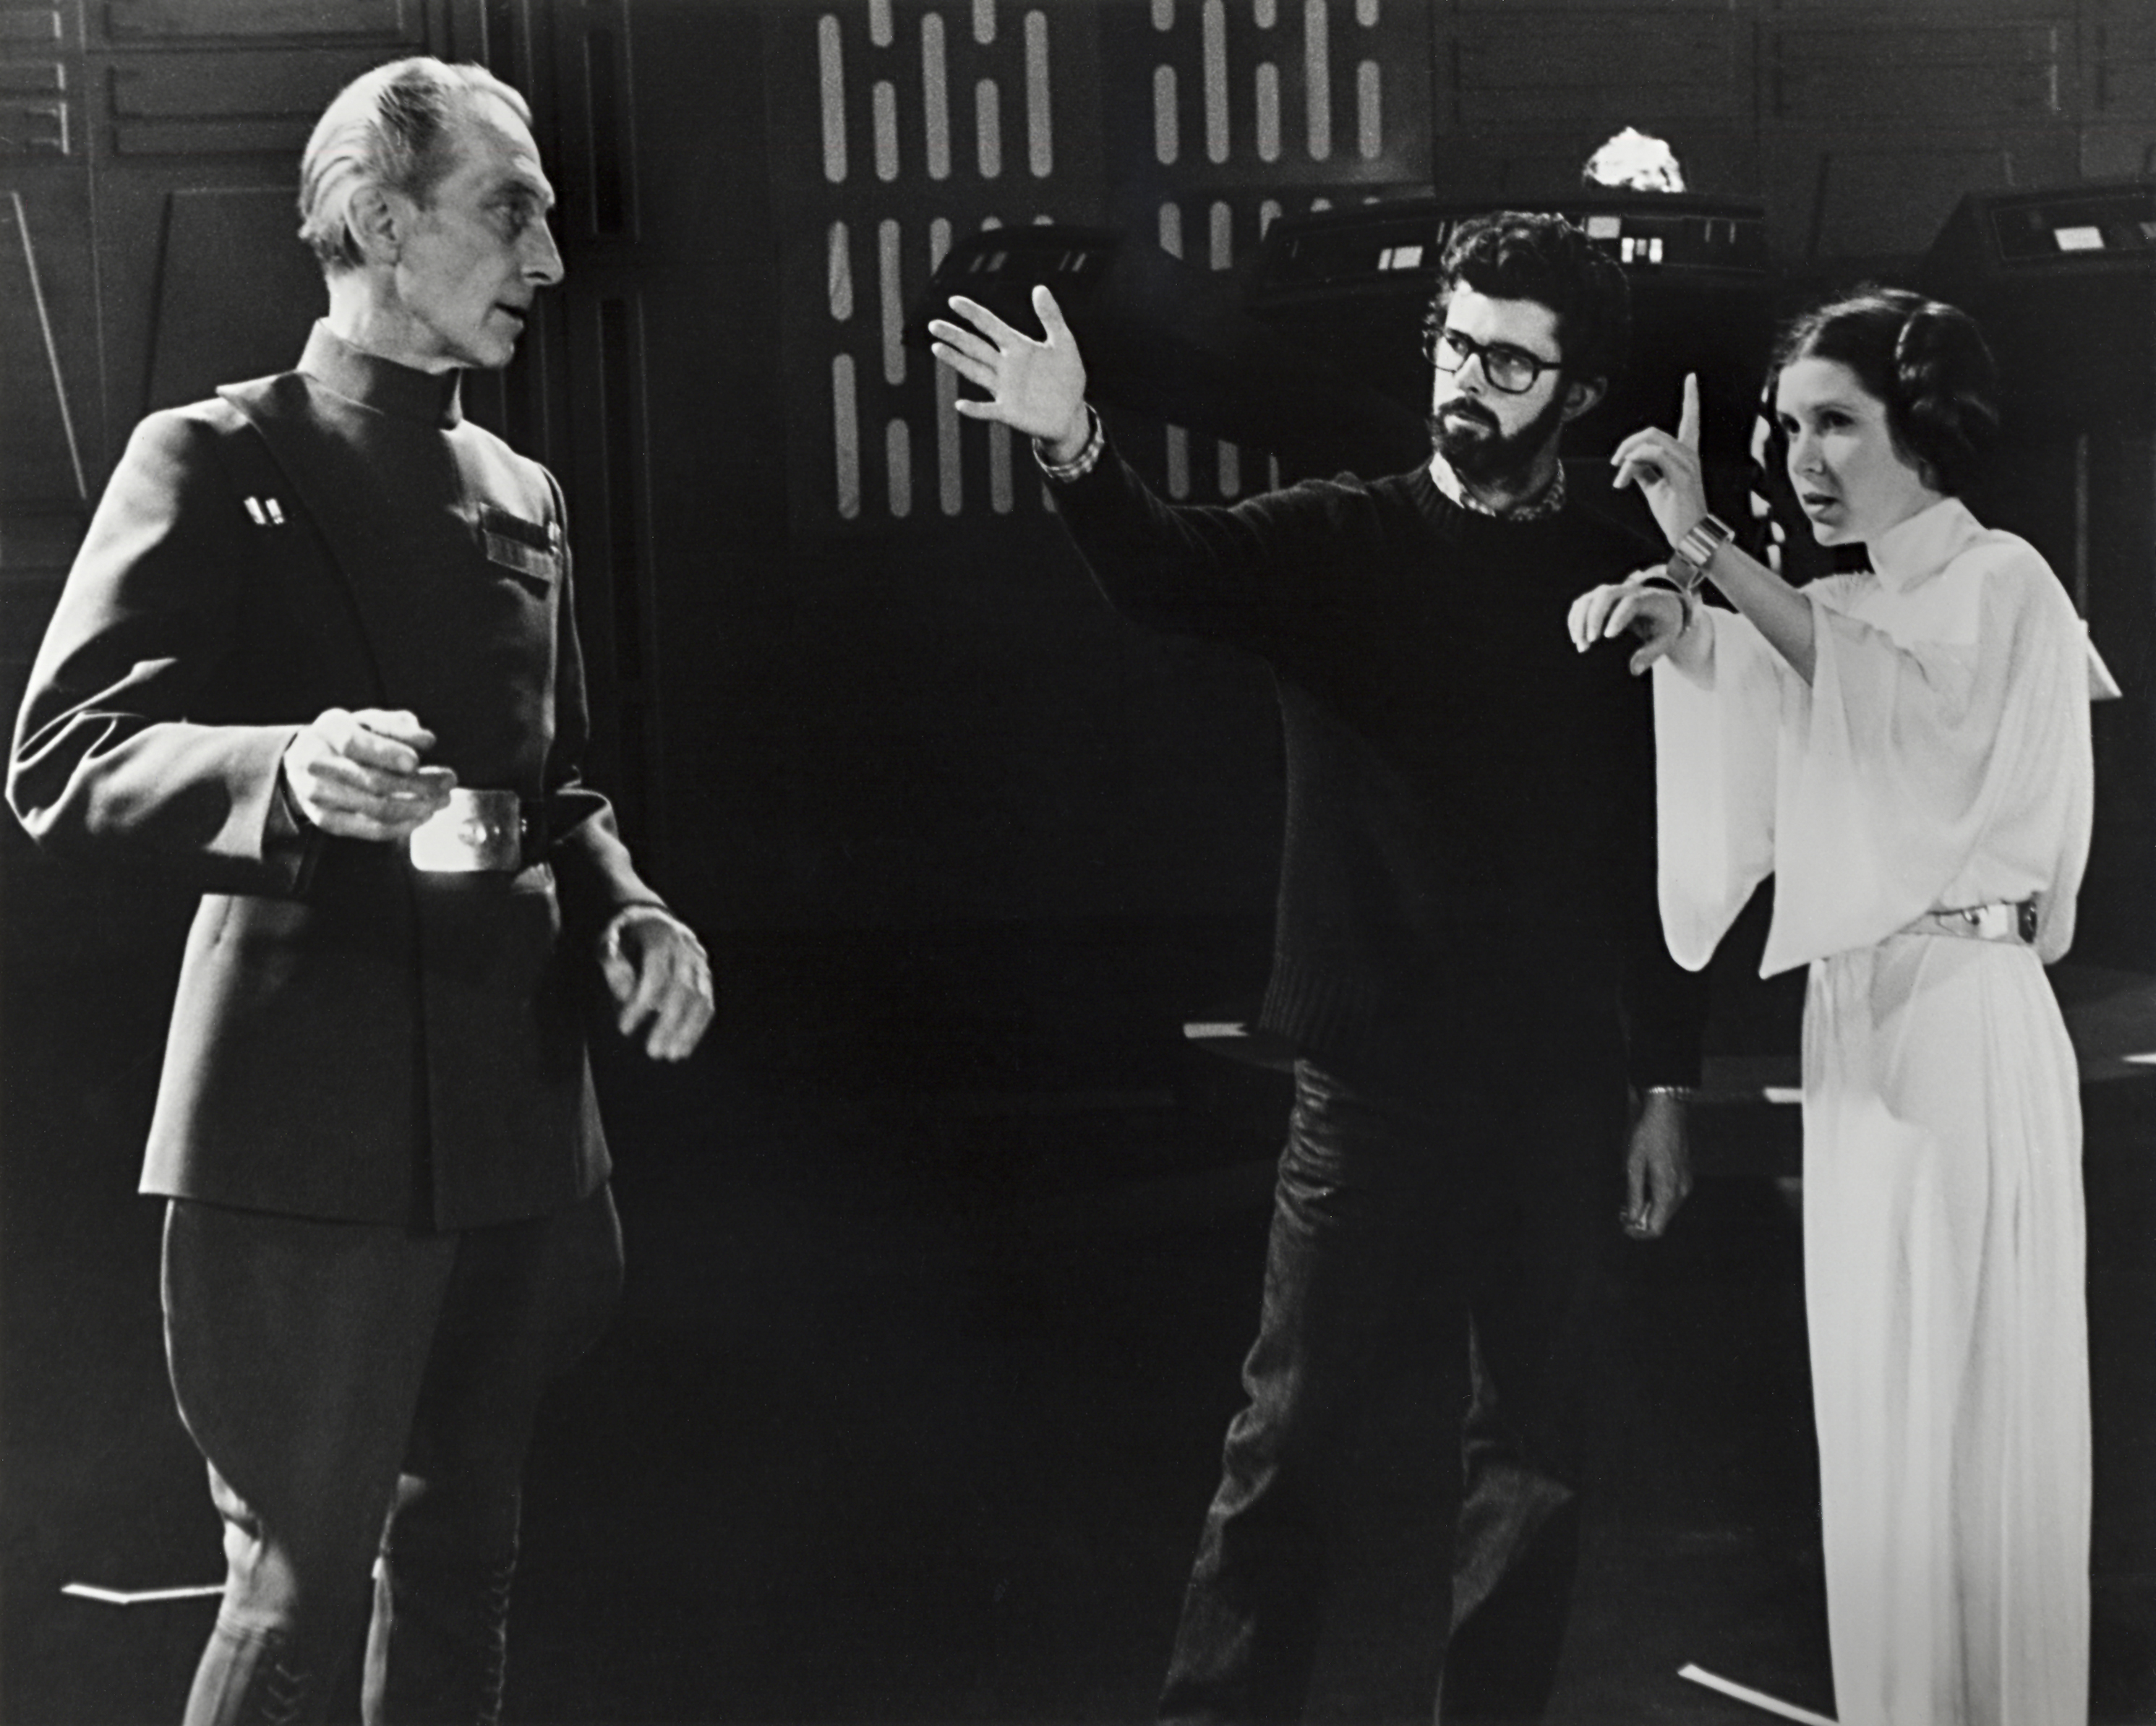 Lucas directs Peter Cushing (Grand Moff Tarkin) and Carrie Fisher.